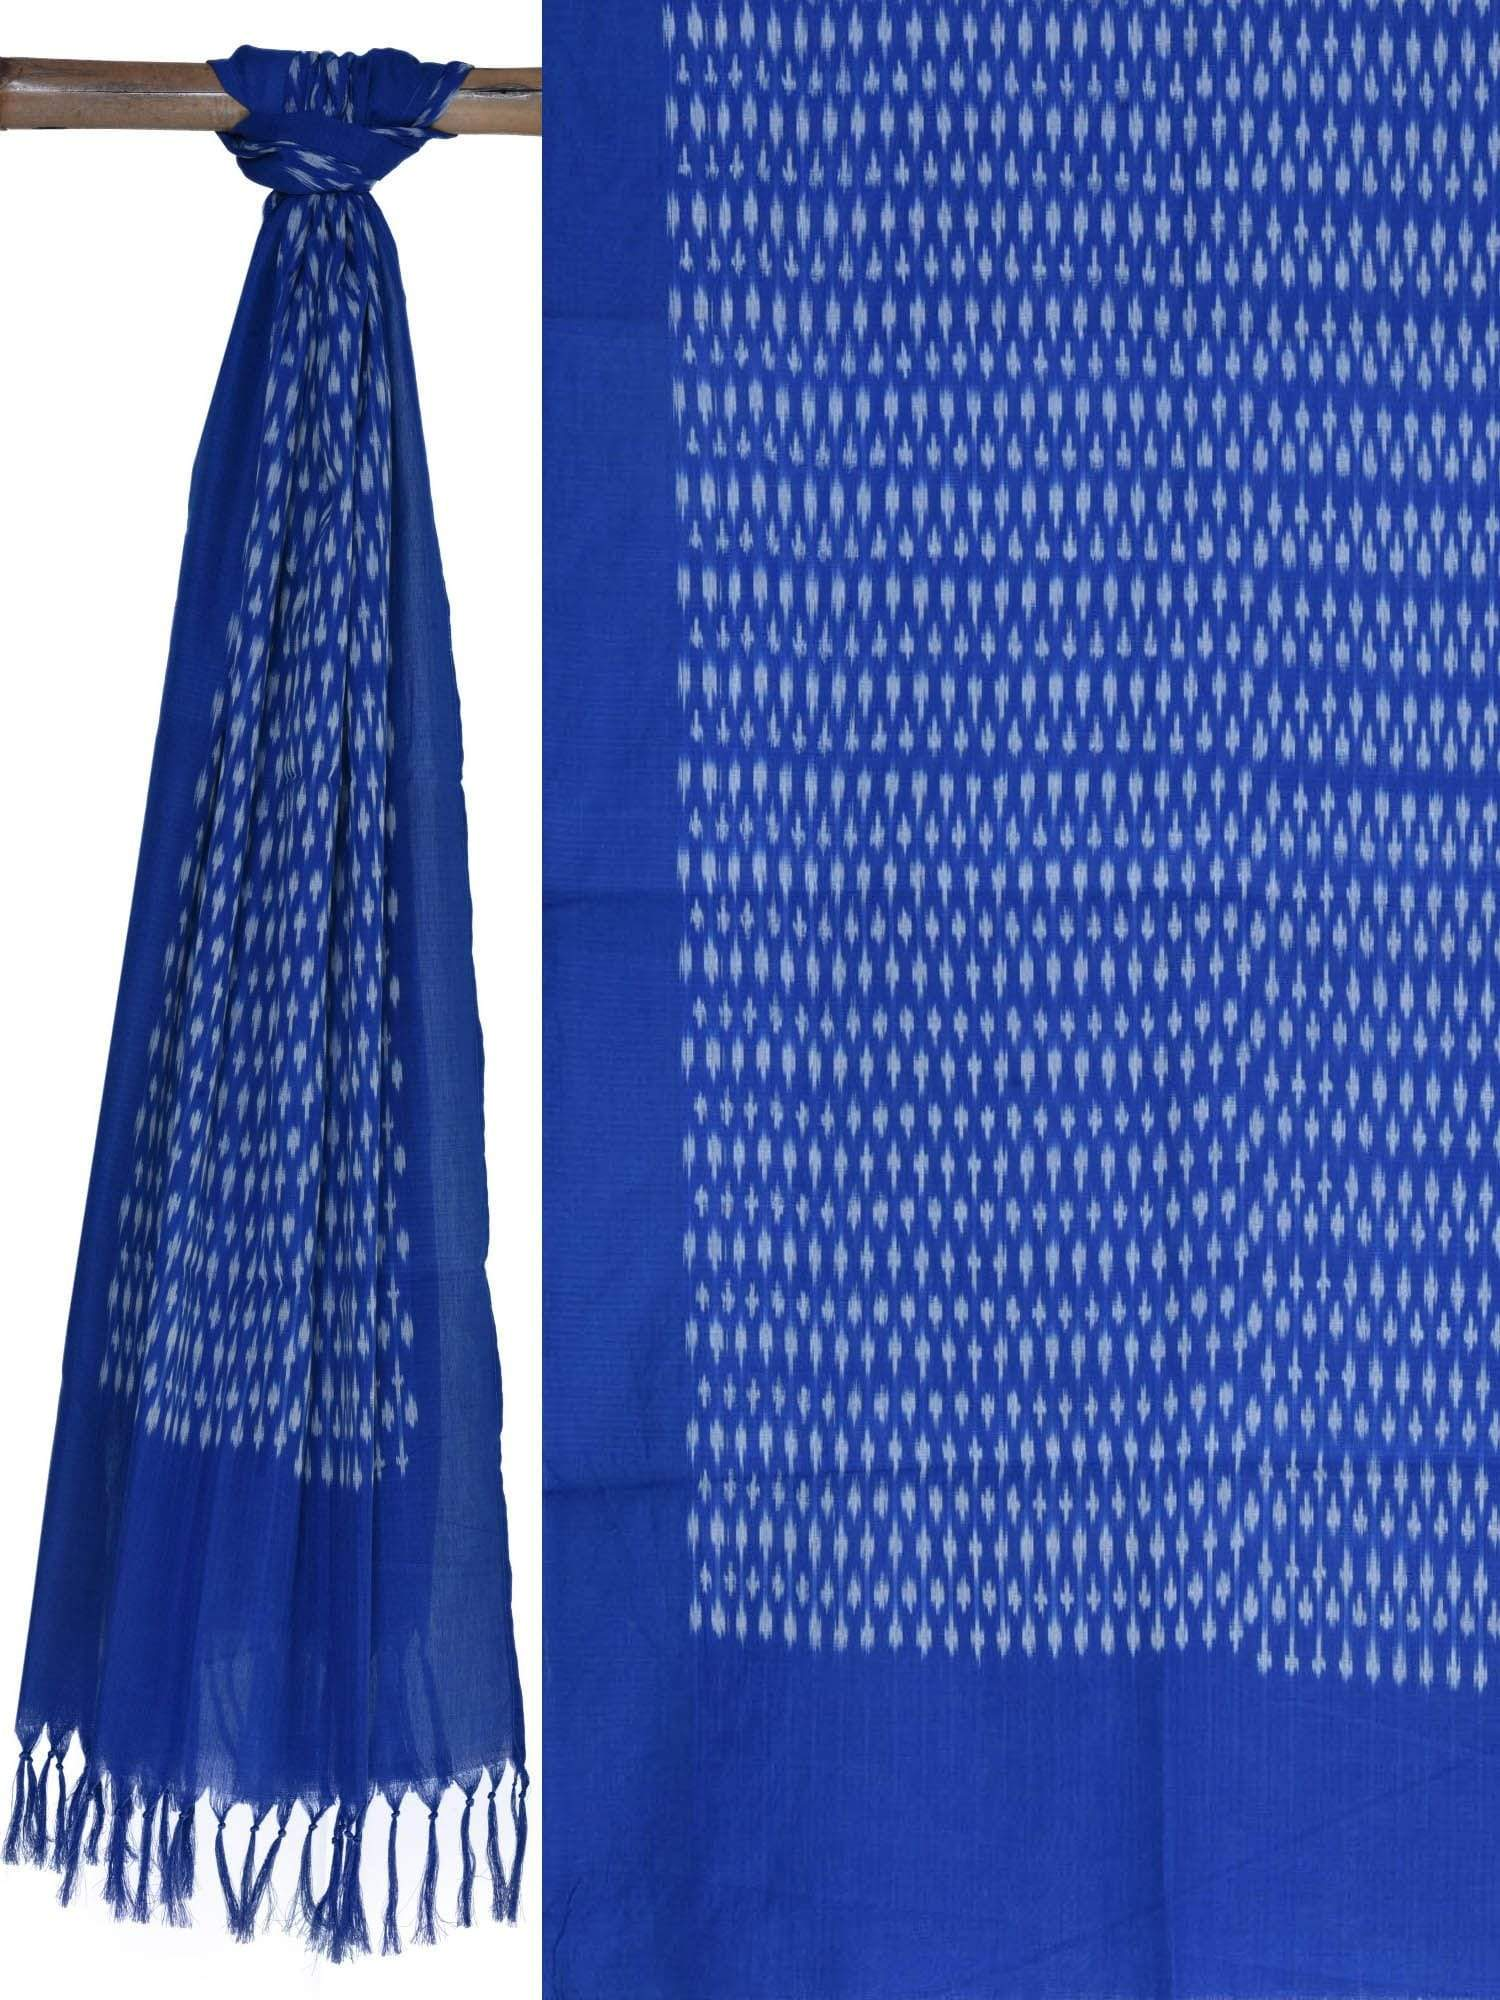 Blue Pochampally Ikat Cotton Handloom Stole ds1653